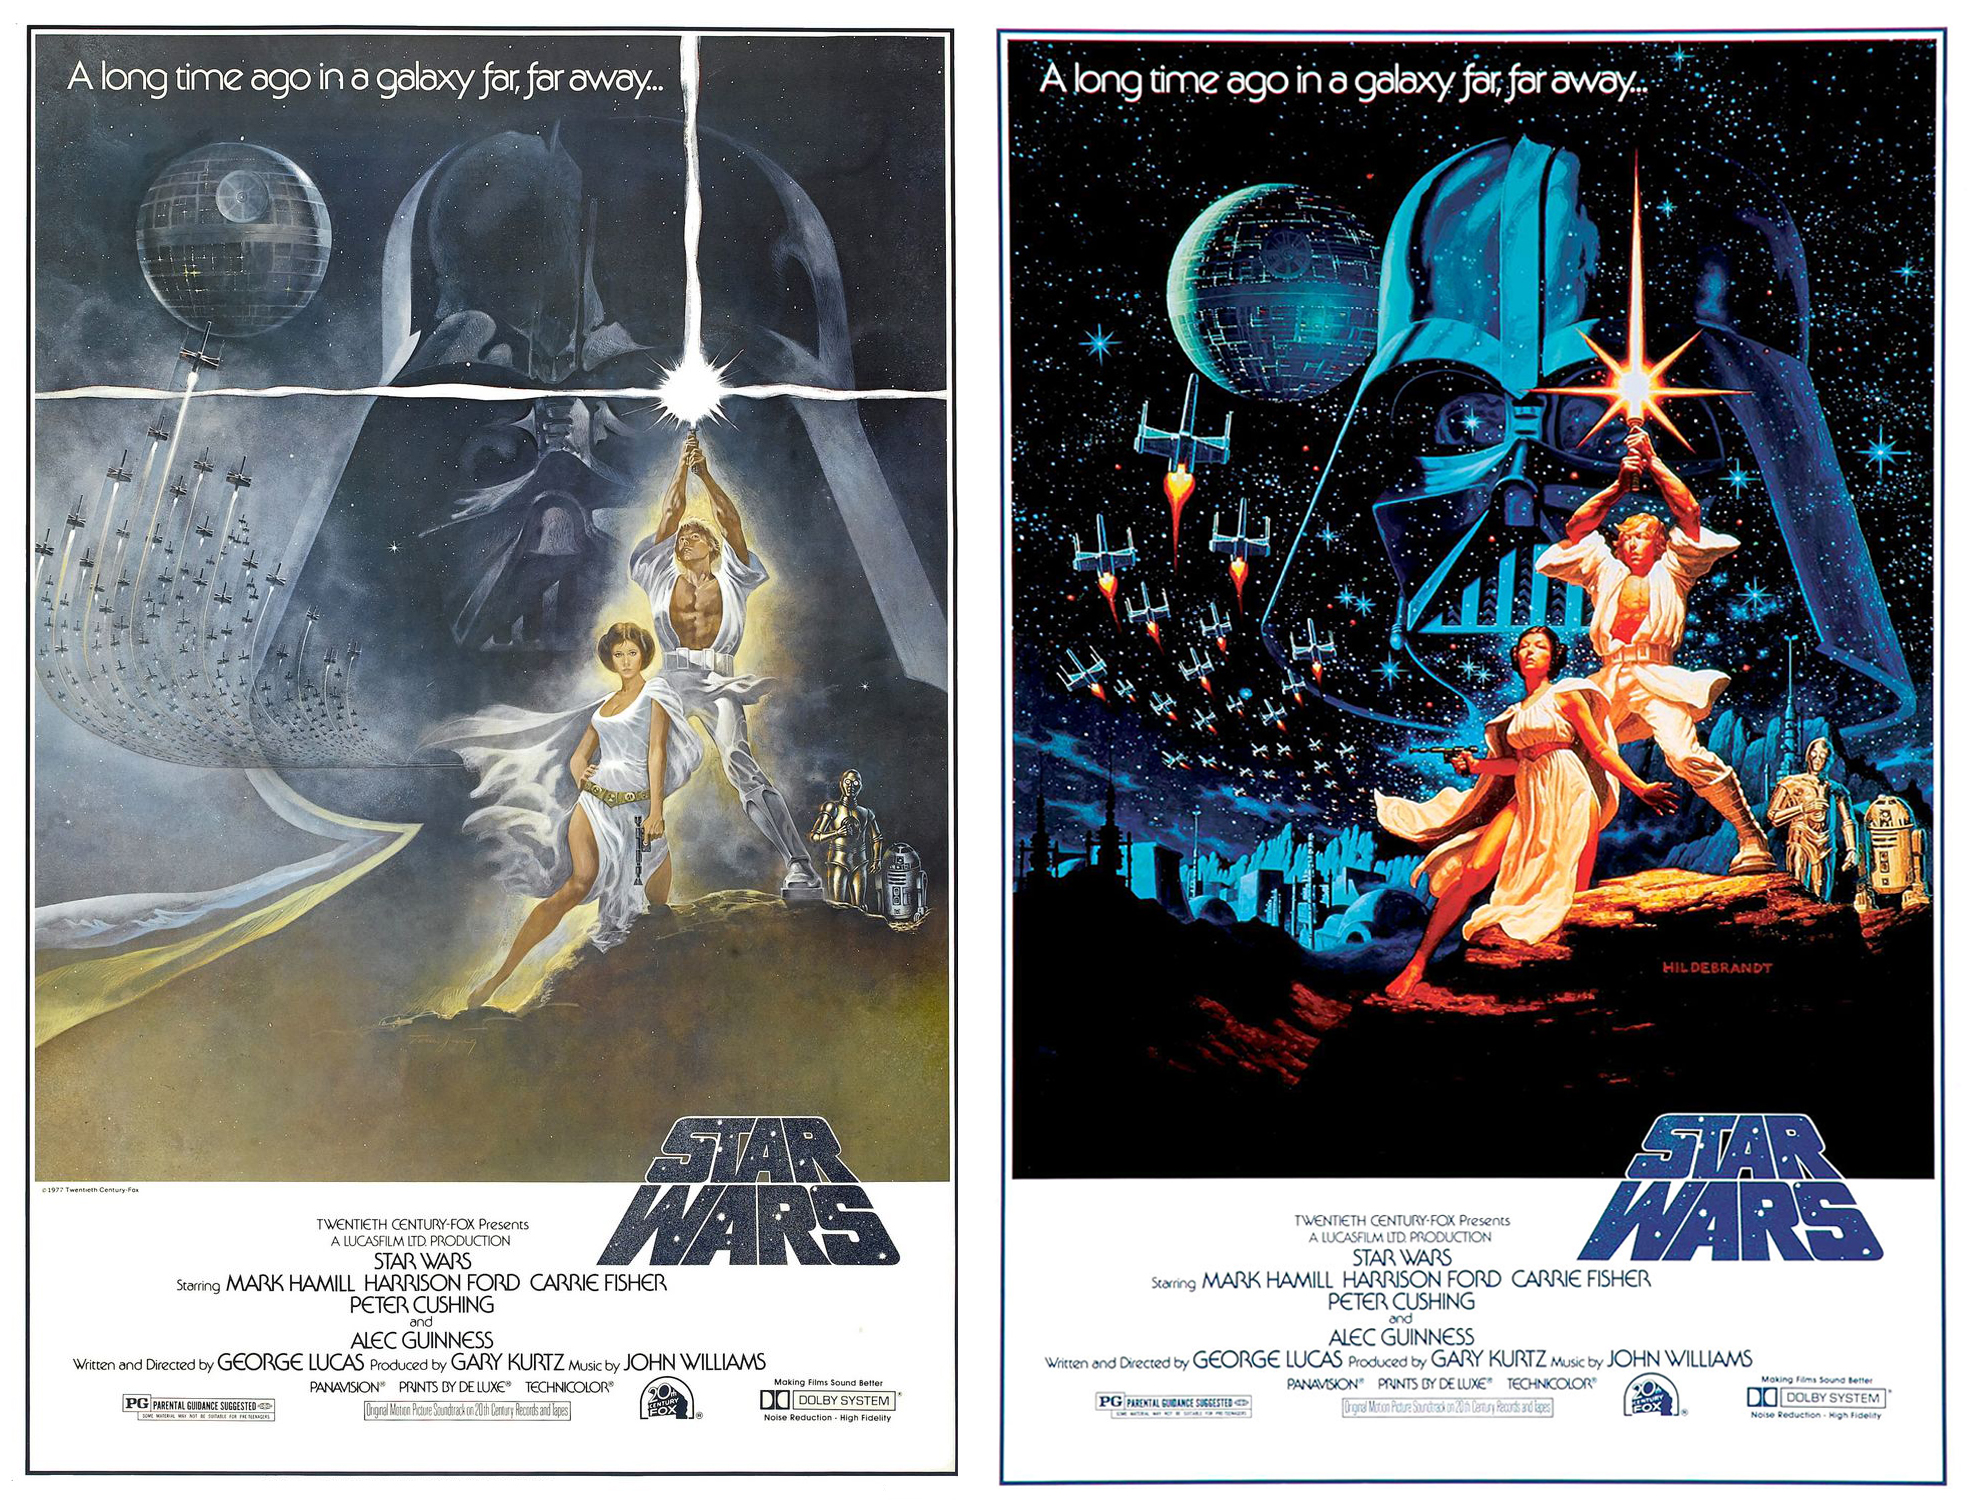 The Original Star Wars Release Posters